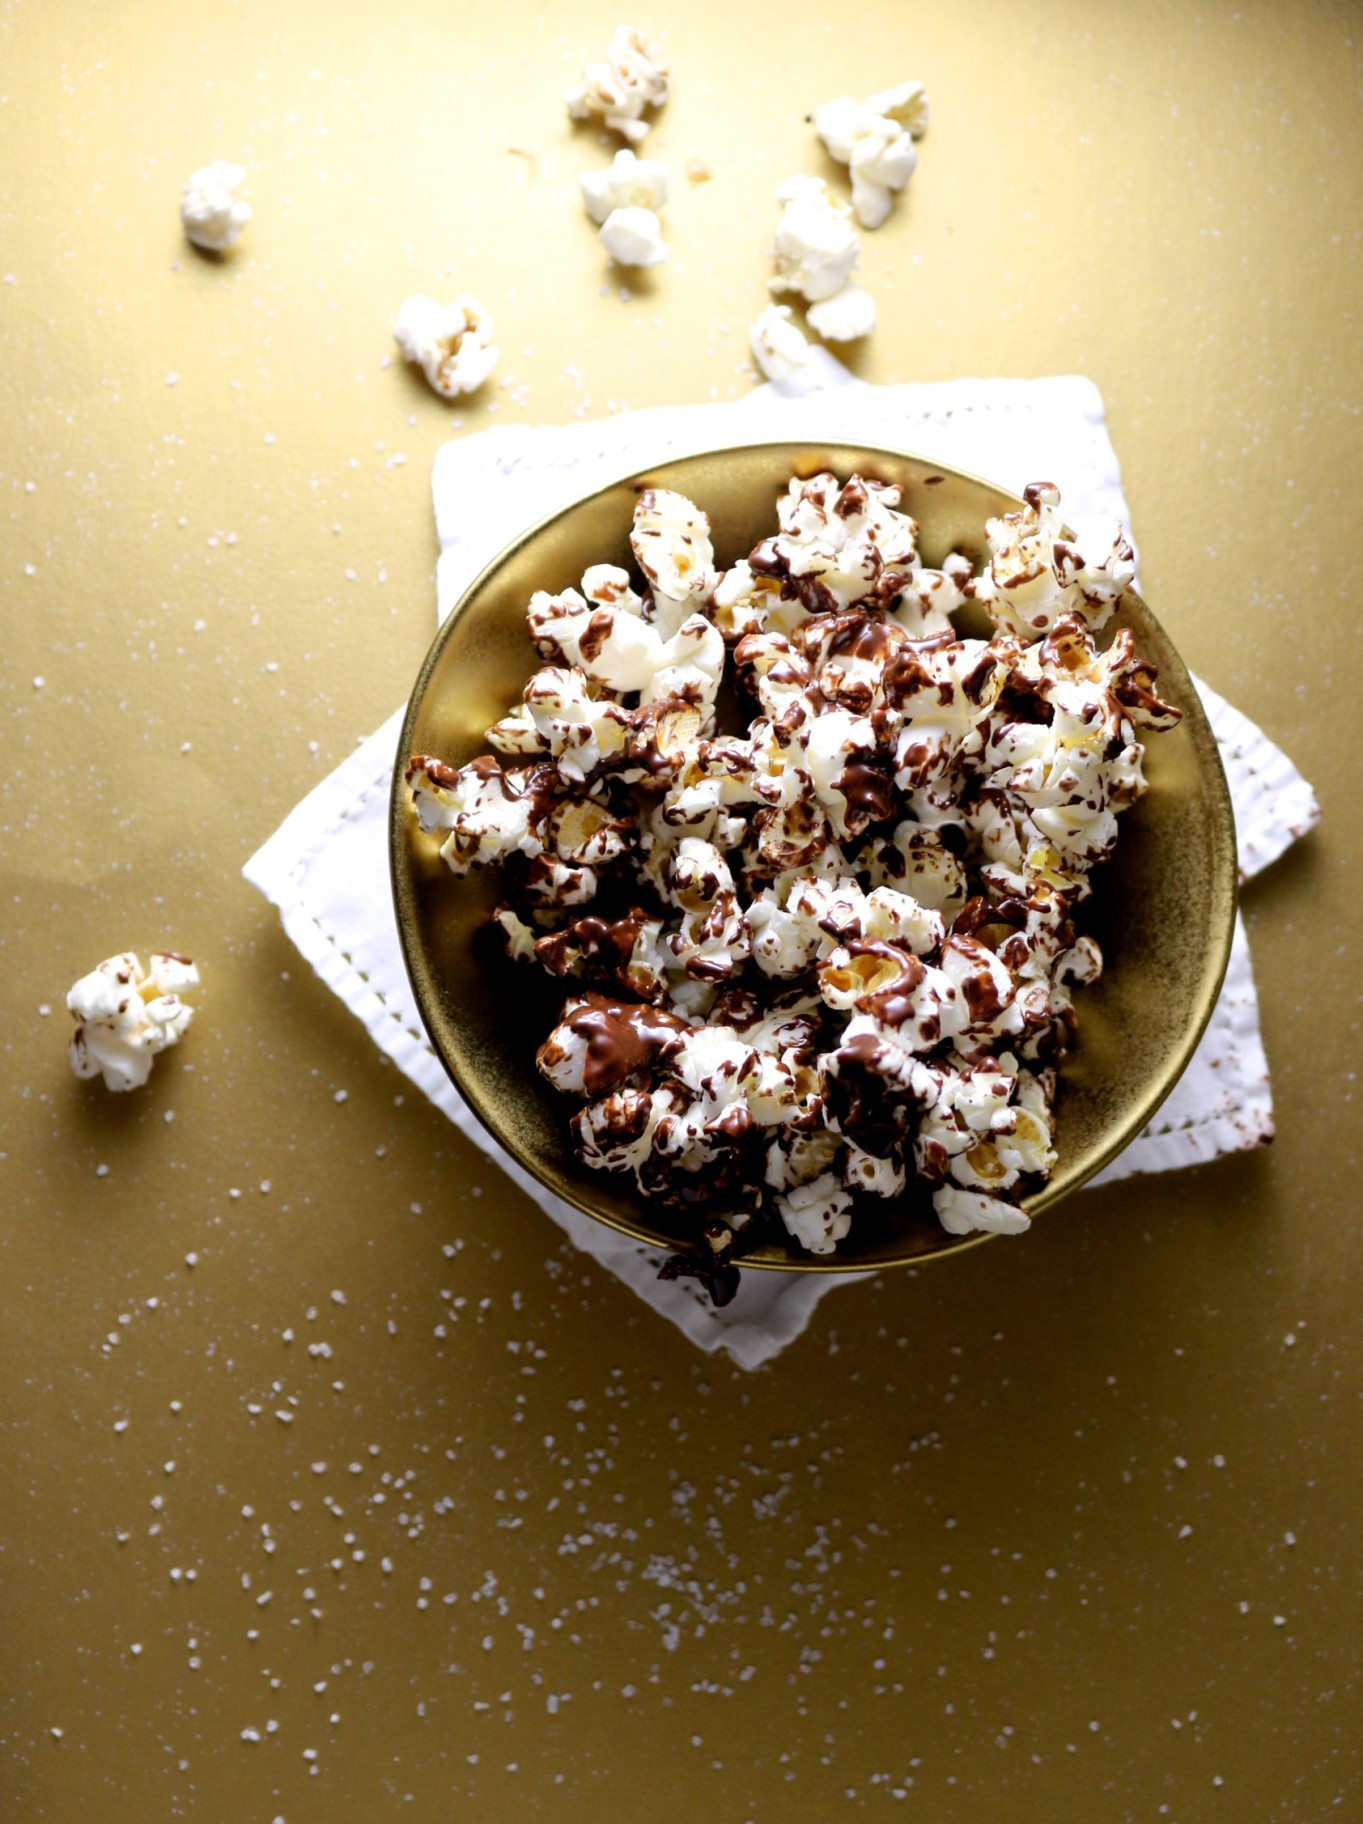 Palomitas con chocolate